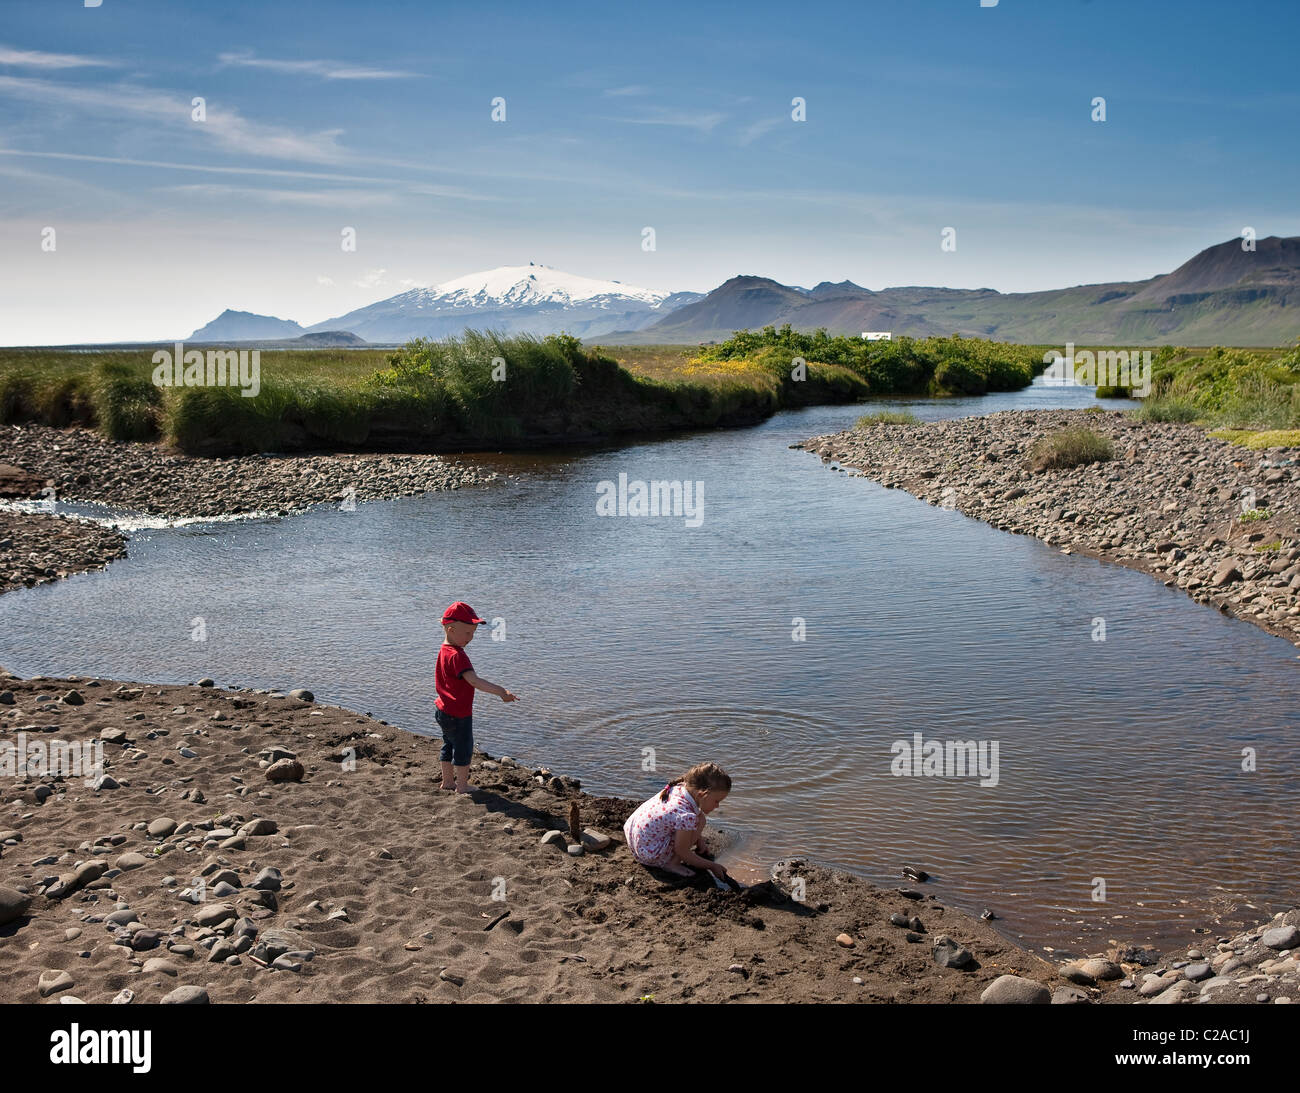 Brother and sister exploring rocky beach, Snaefellsjokull glacier in background, Snaefellsnes Peninsula, Iceland - Stock Image